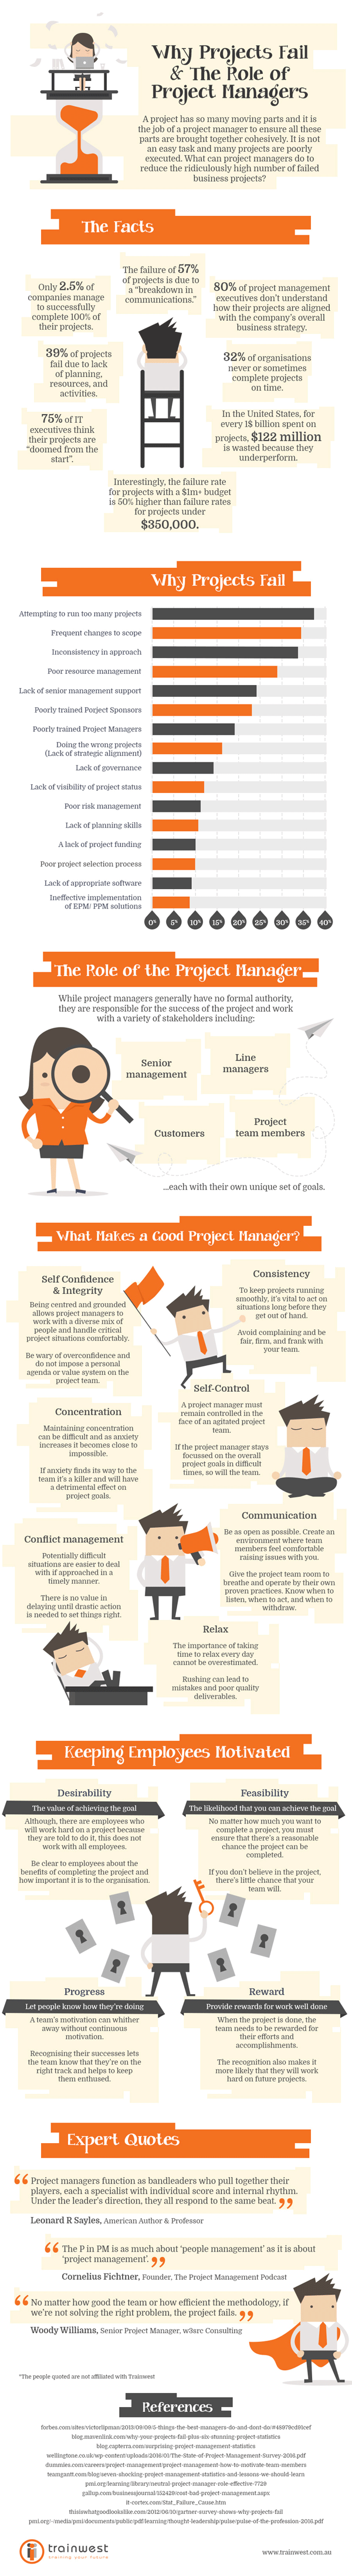 Why projects fail and the role of project managers